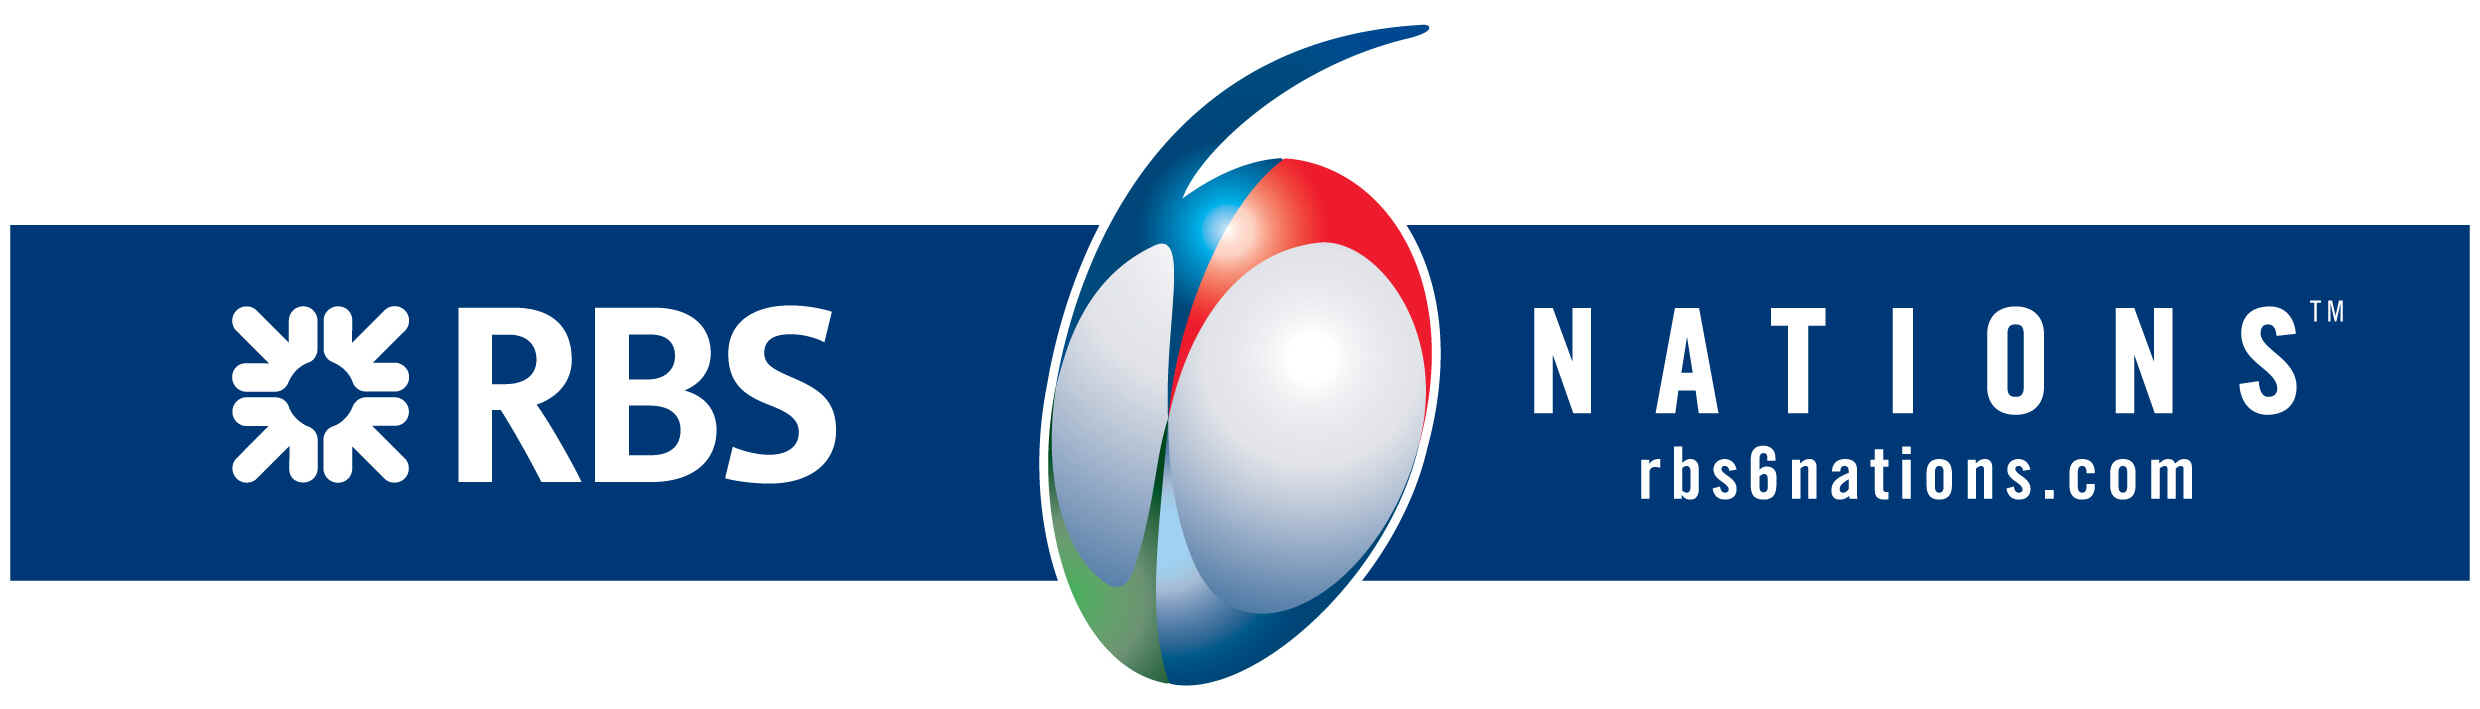 Six Nations Kick Off On February 4 - InPlayer Paywall